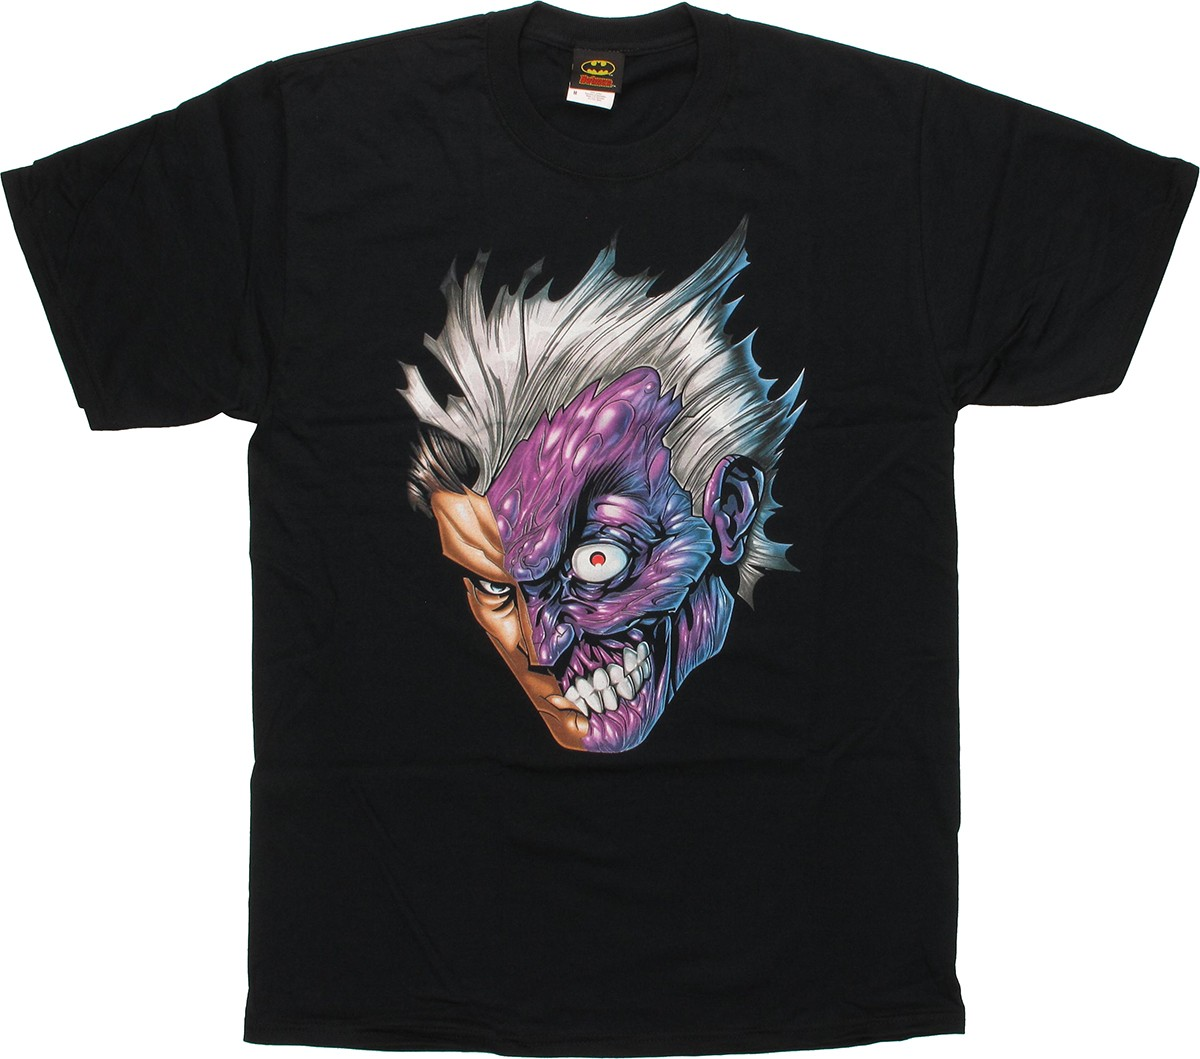 Be Unique. Shop batman t-shirts created by independent artists from around the globe. We print the highest quality batman t-shirts on the internet.